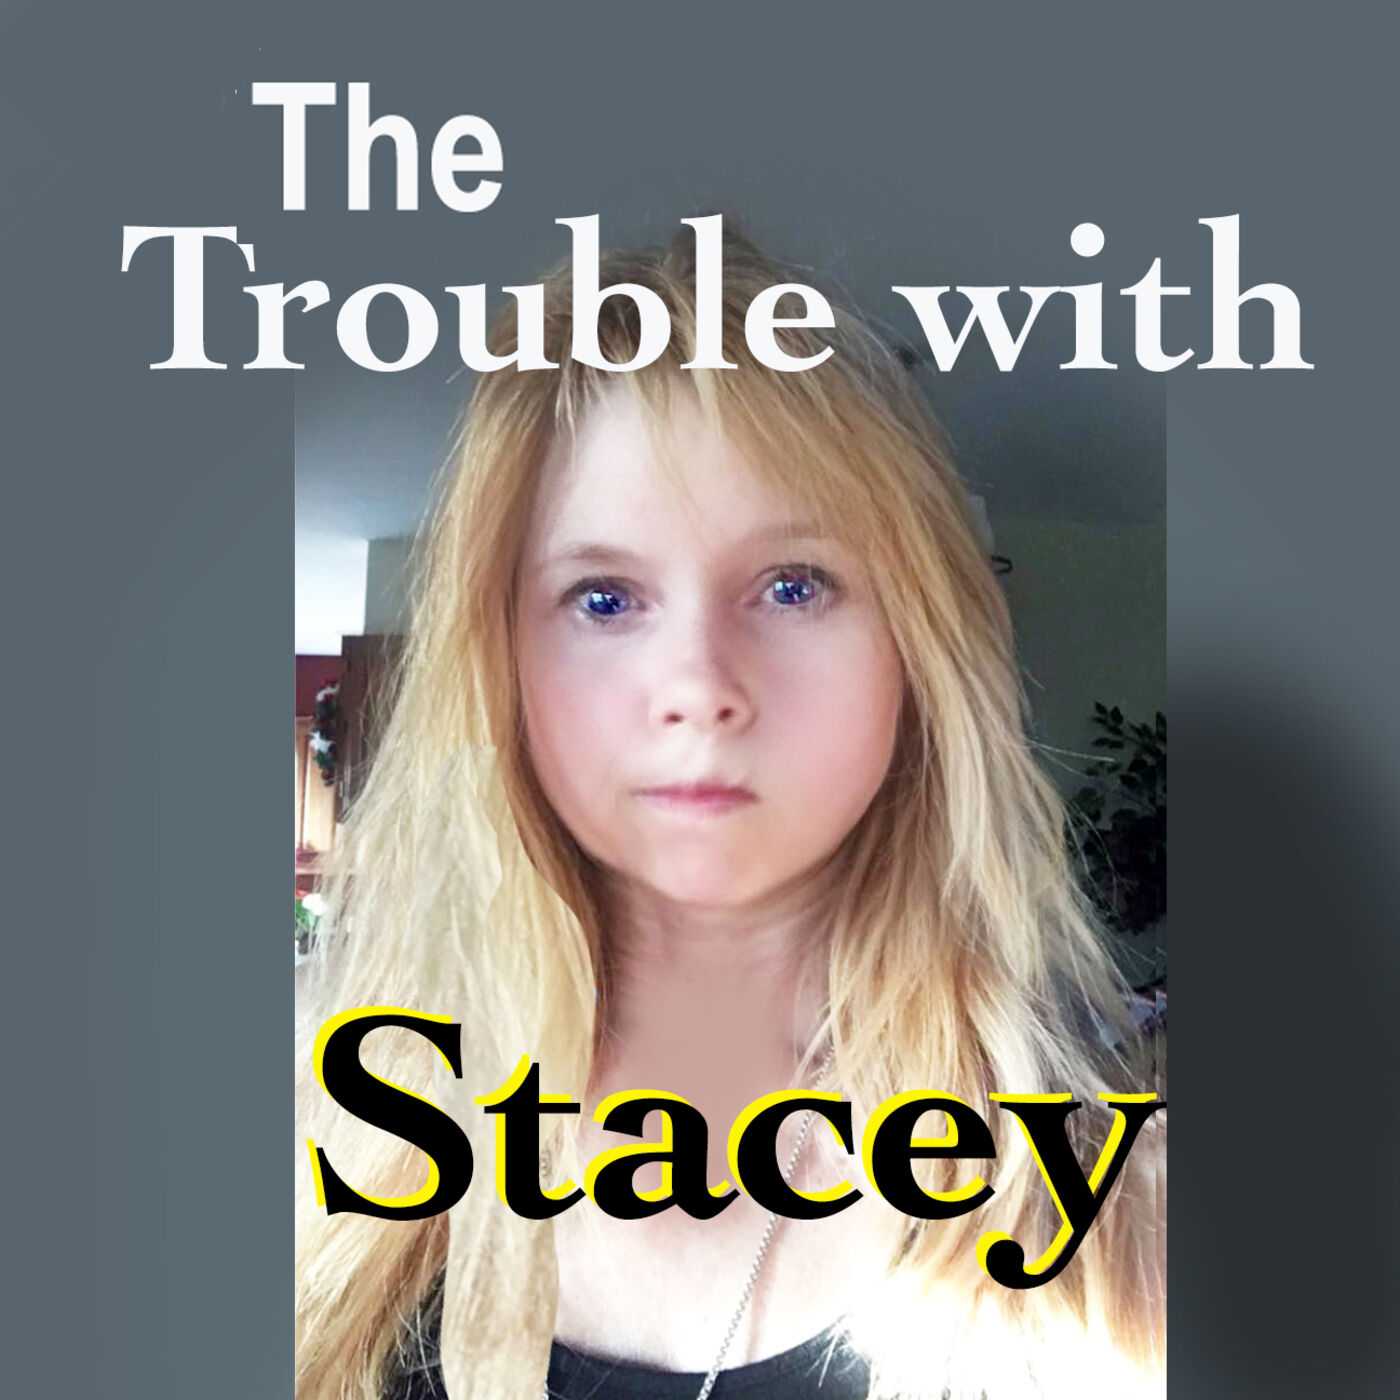 The Trouble with Stacey